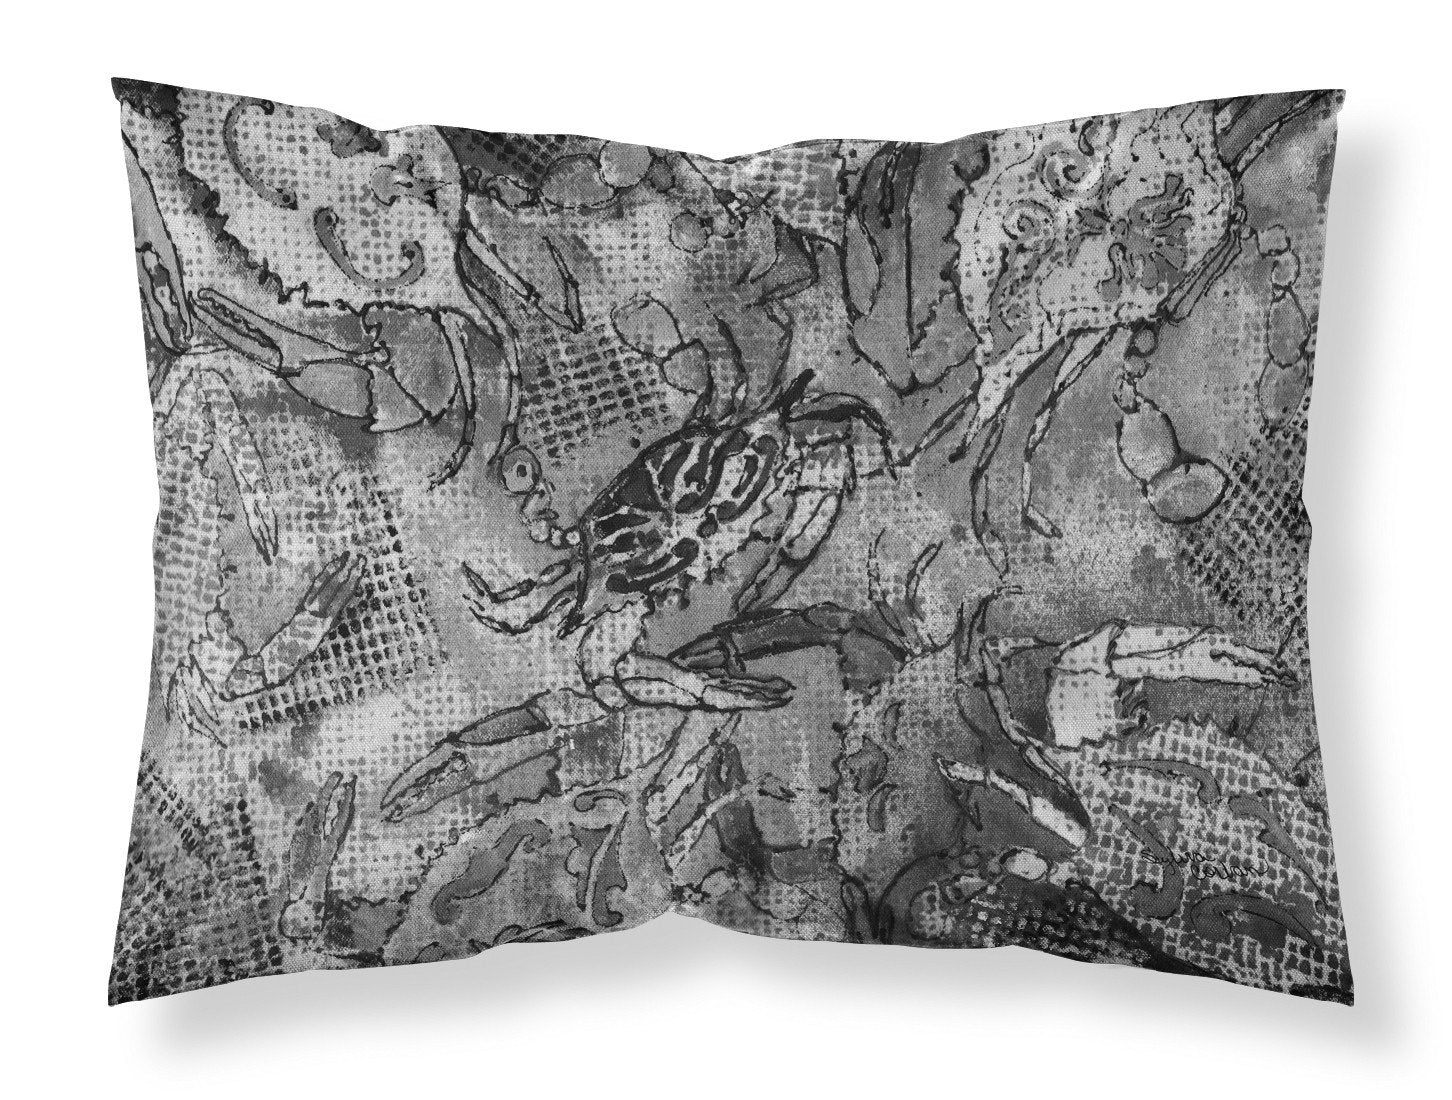 Grey Canvas Abstract Crabs Fabric Standard Pillowcase 8953PILLOWCASE by Caroline's Treasures